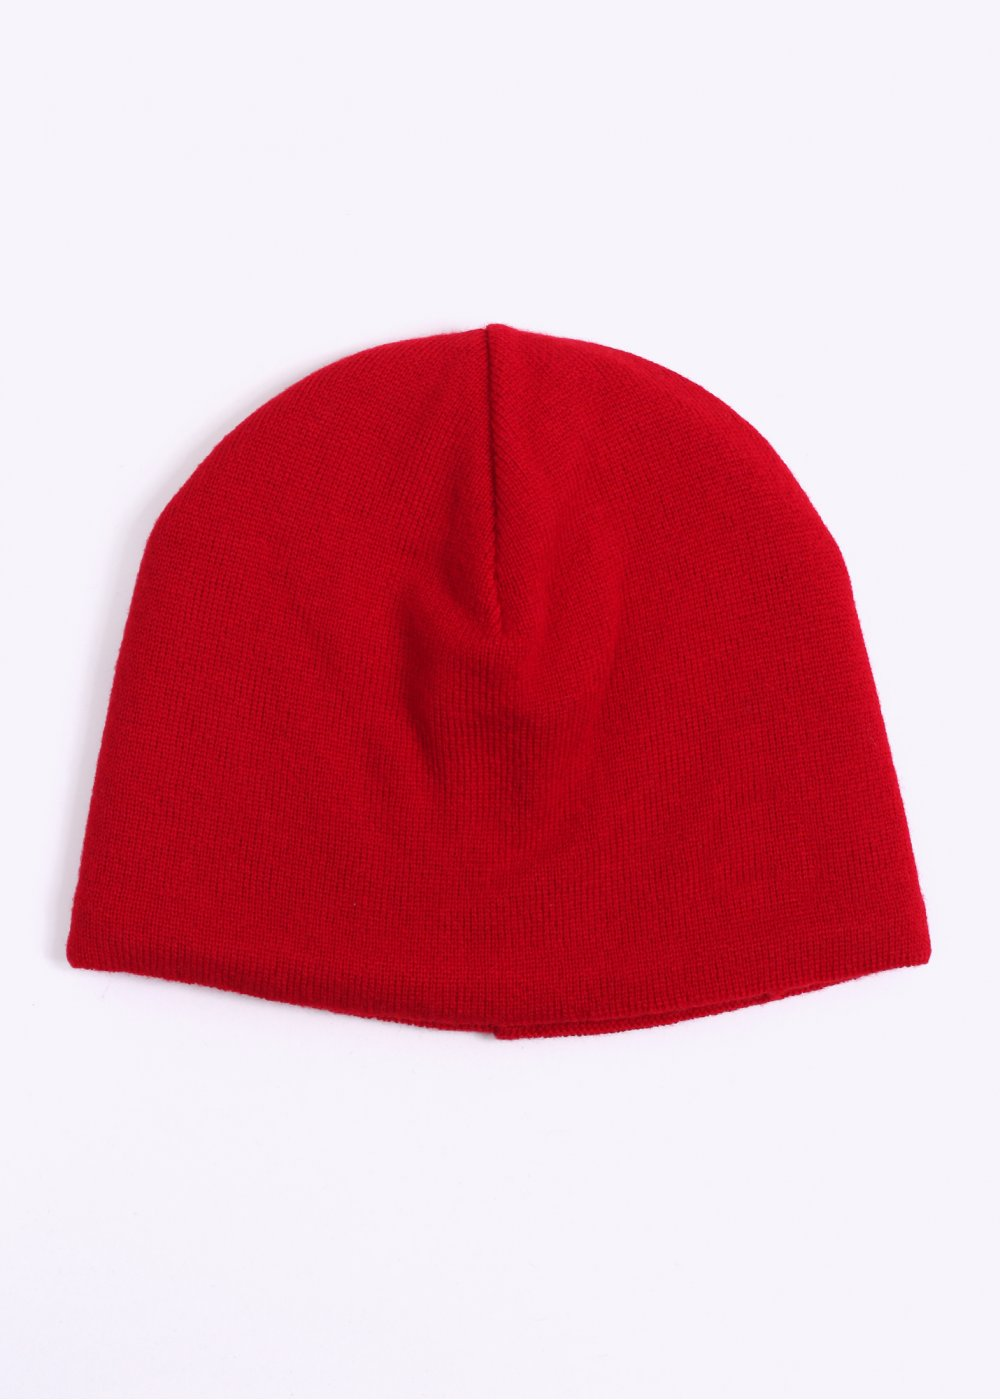 ef45088a7af Canada Goose Merino Wool Fleece Lined Beanie - Red